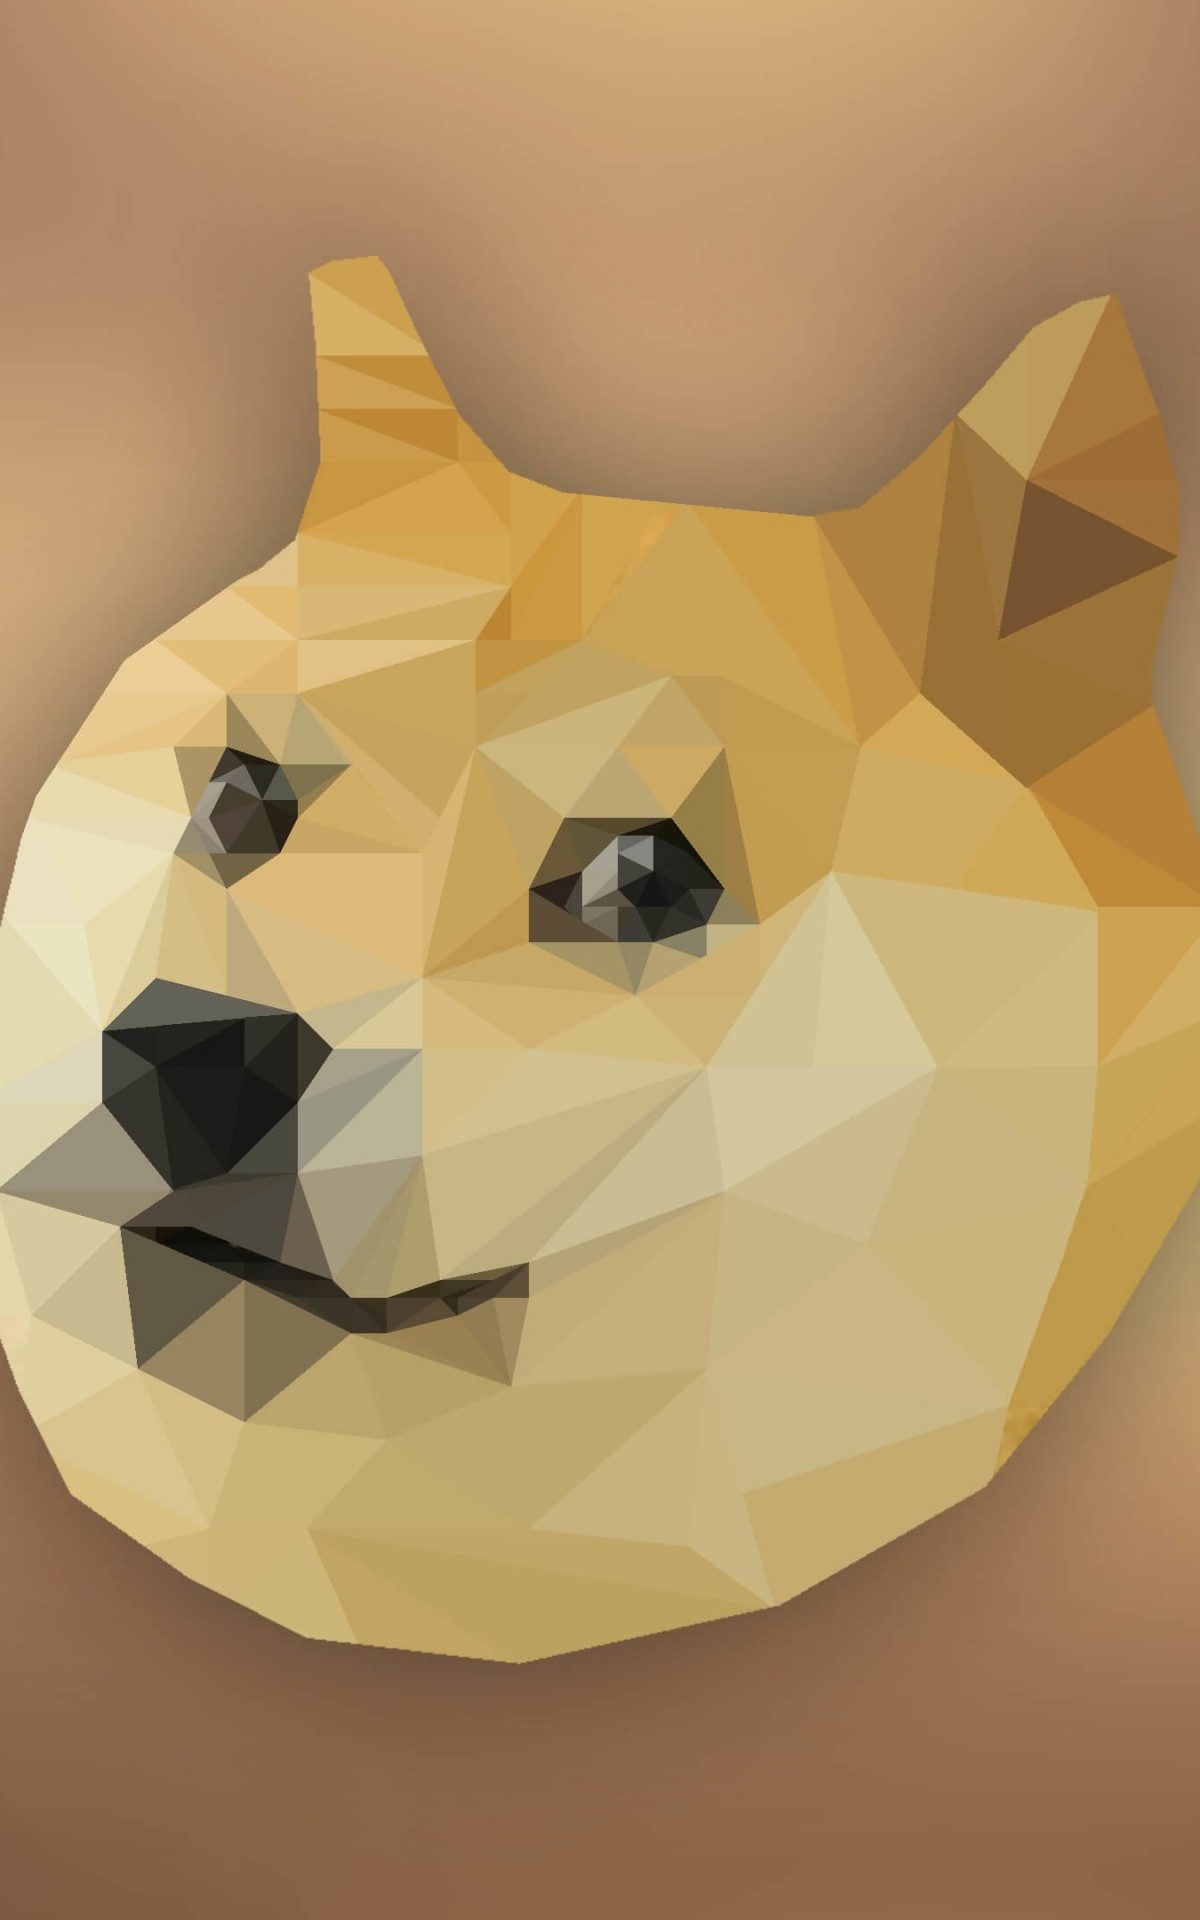 Low Poly Doge Wallpaper for Amazon Kindle Fire HDX